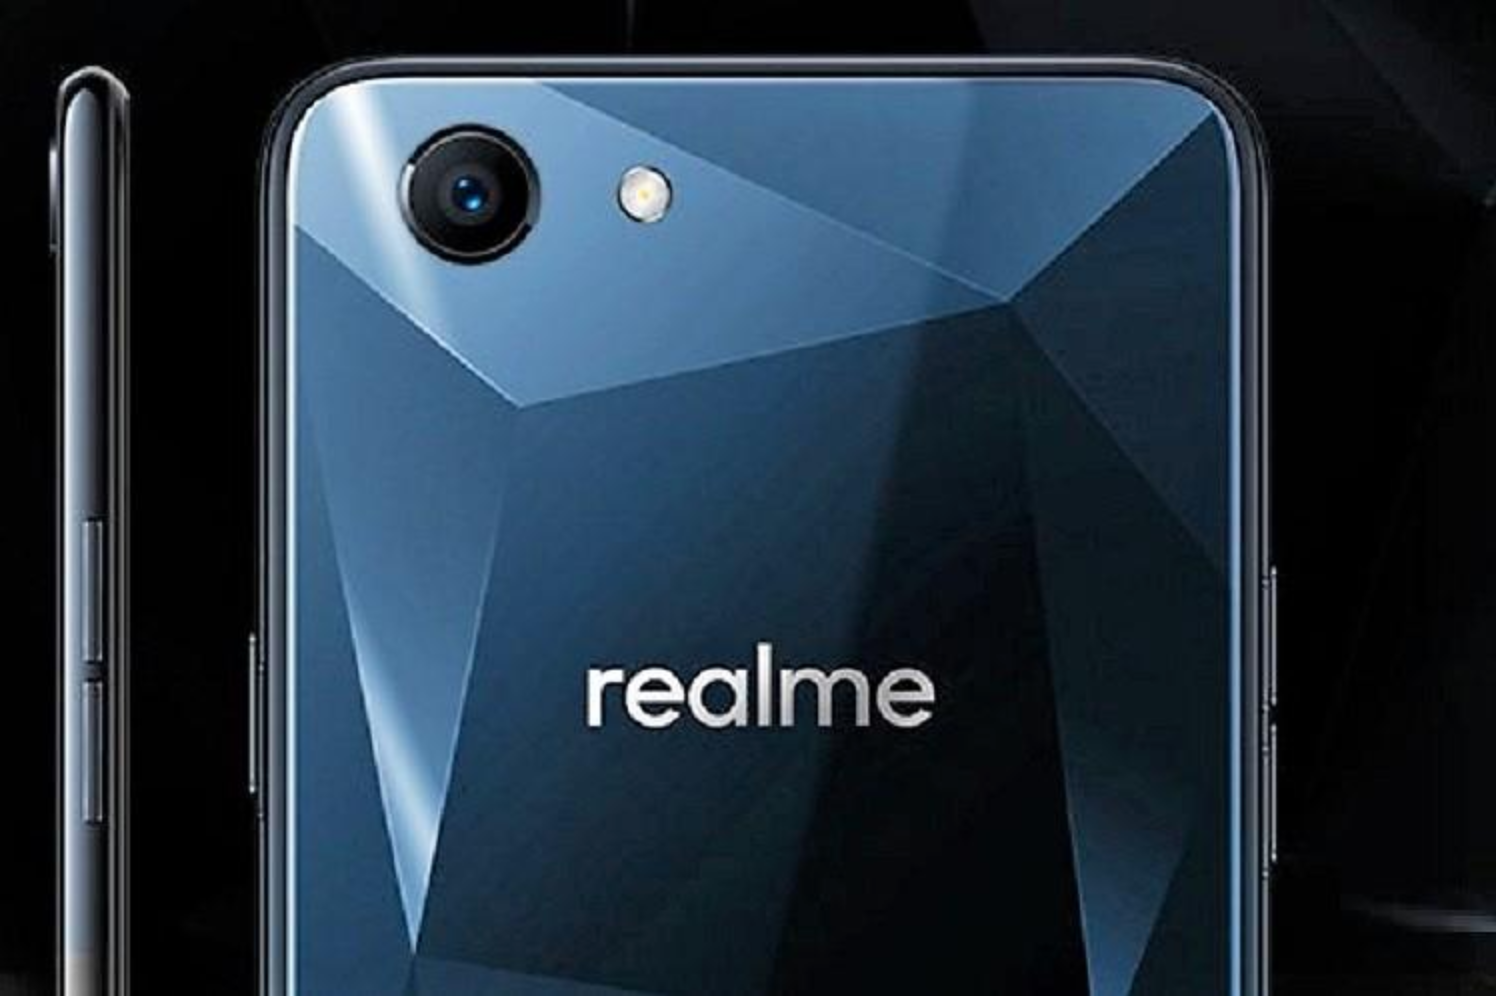 Screen Shot 2020 02 19 at 4.17.21 pm Realme Launches Global Event To Showcase New IoT & 5G Devices